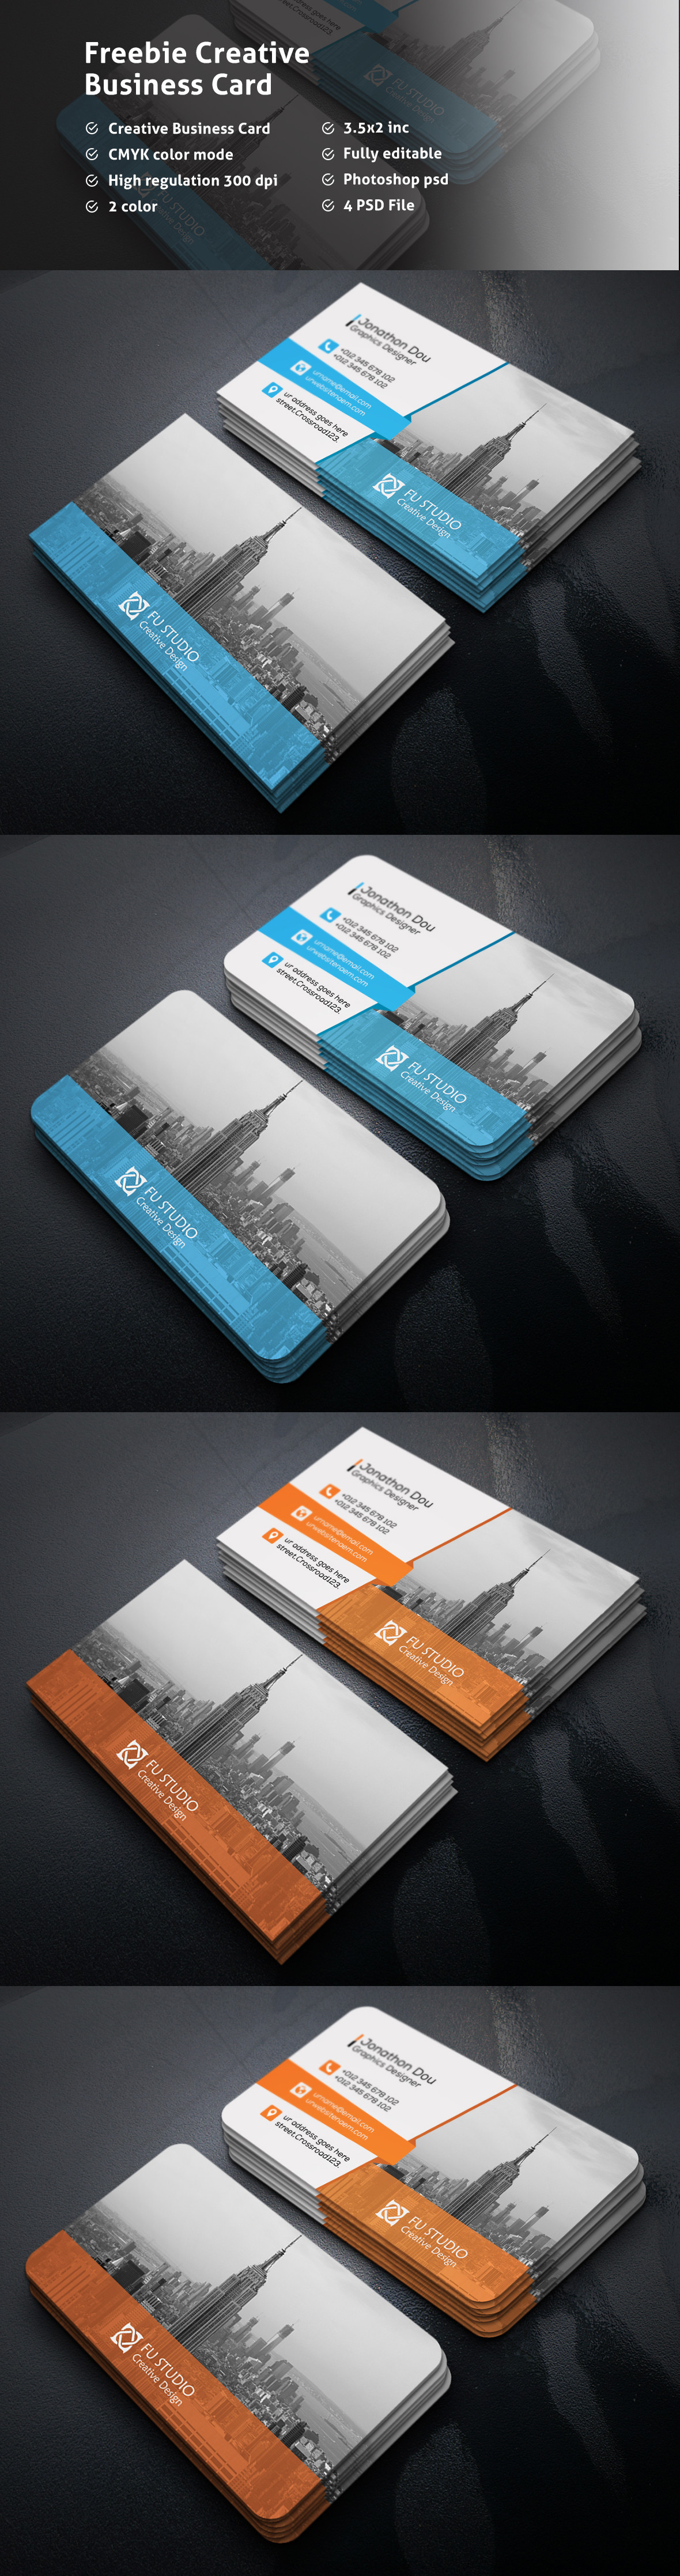 Fantastic Business Cards PSD Templates for Free - Stylish Blue ...